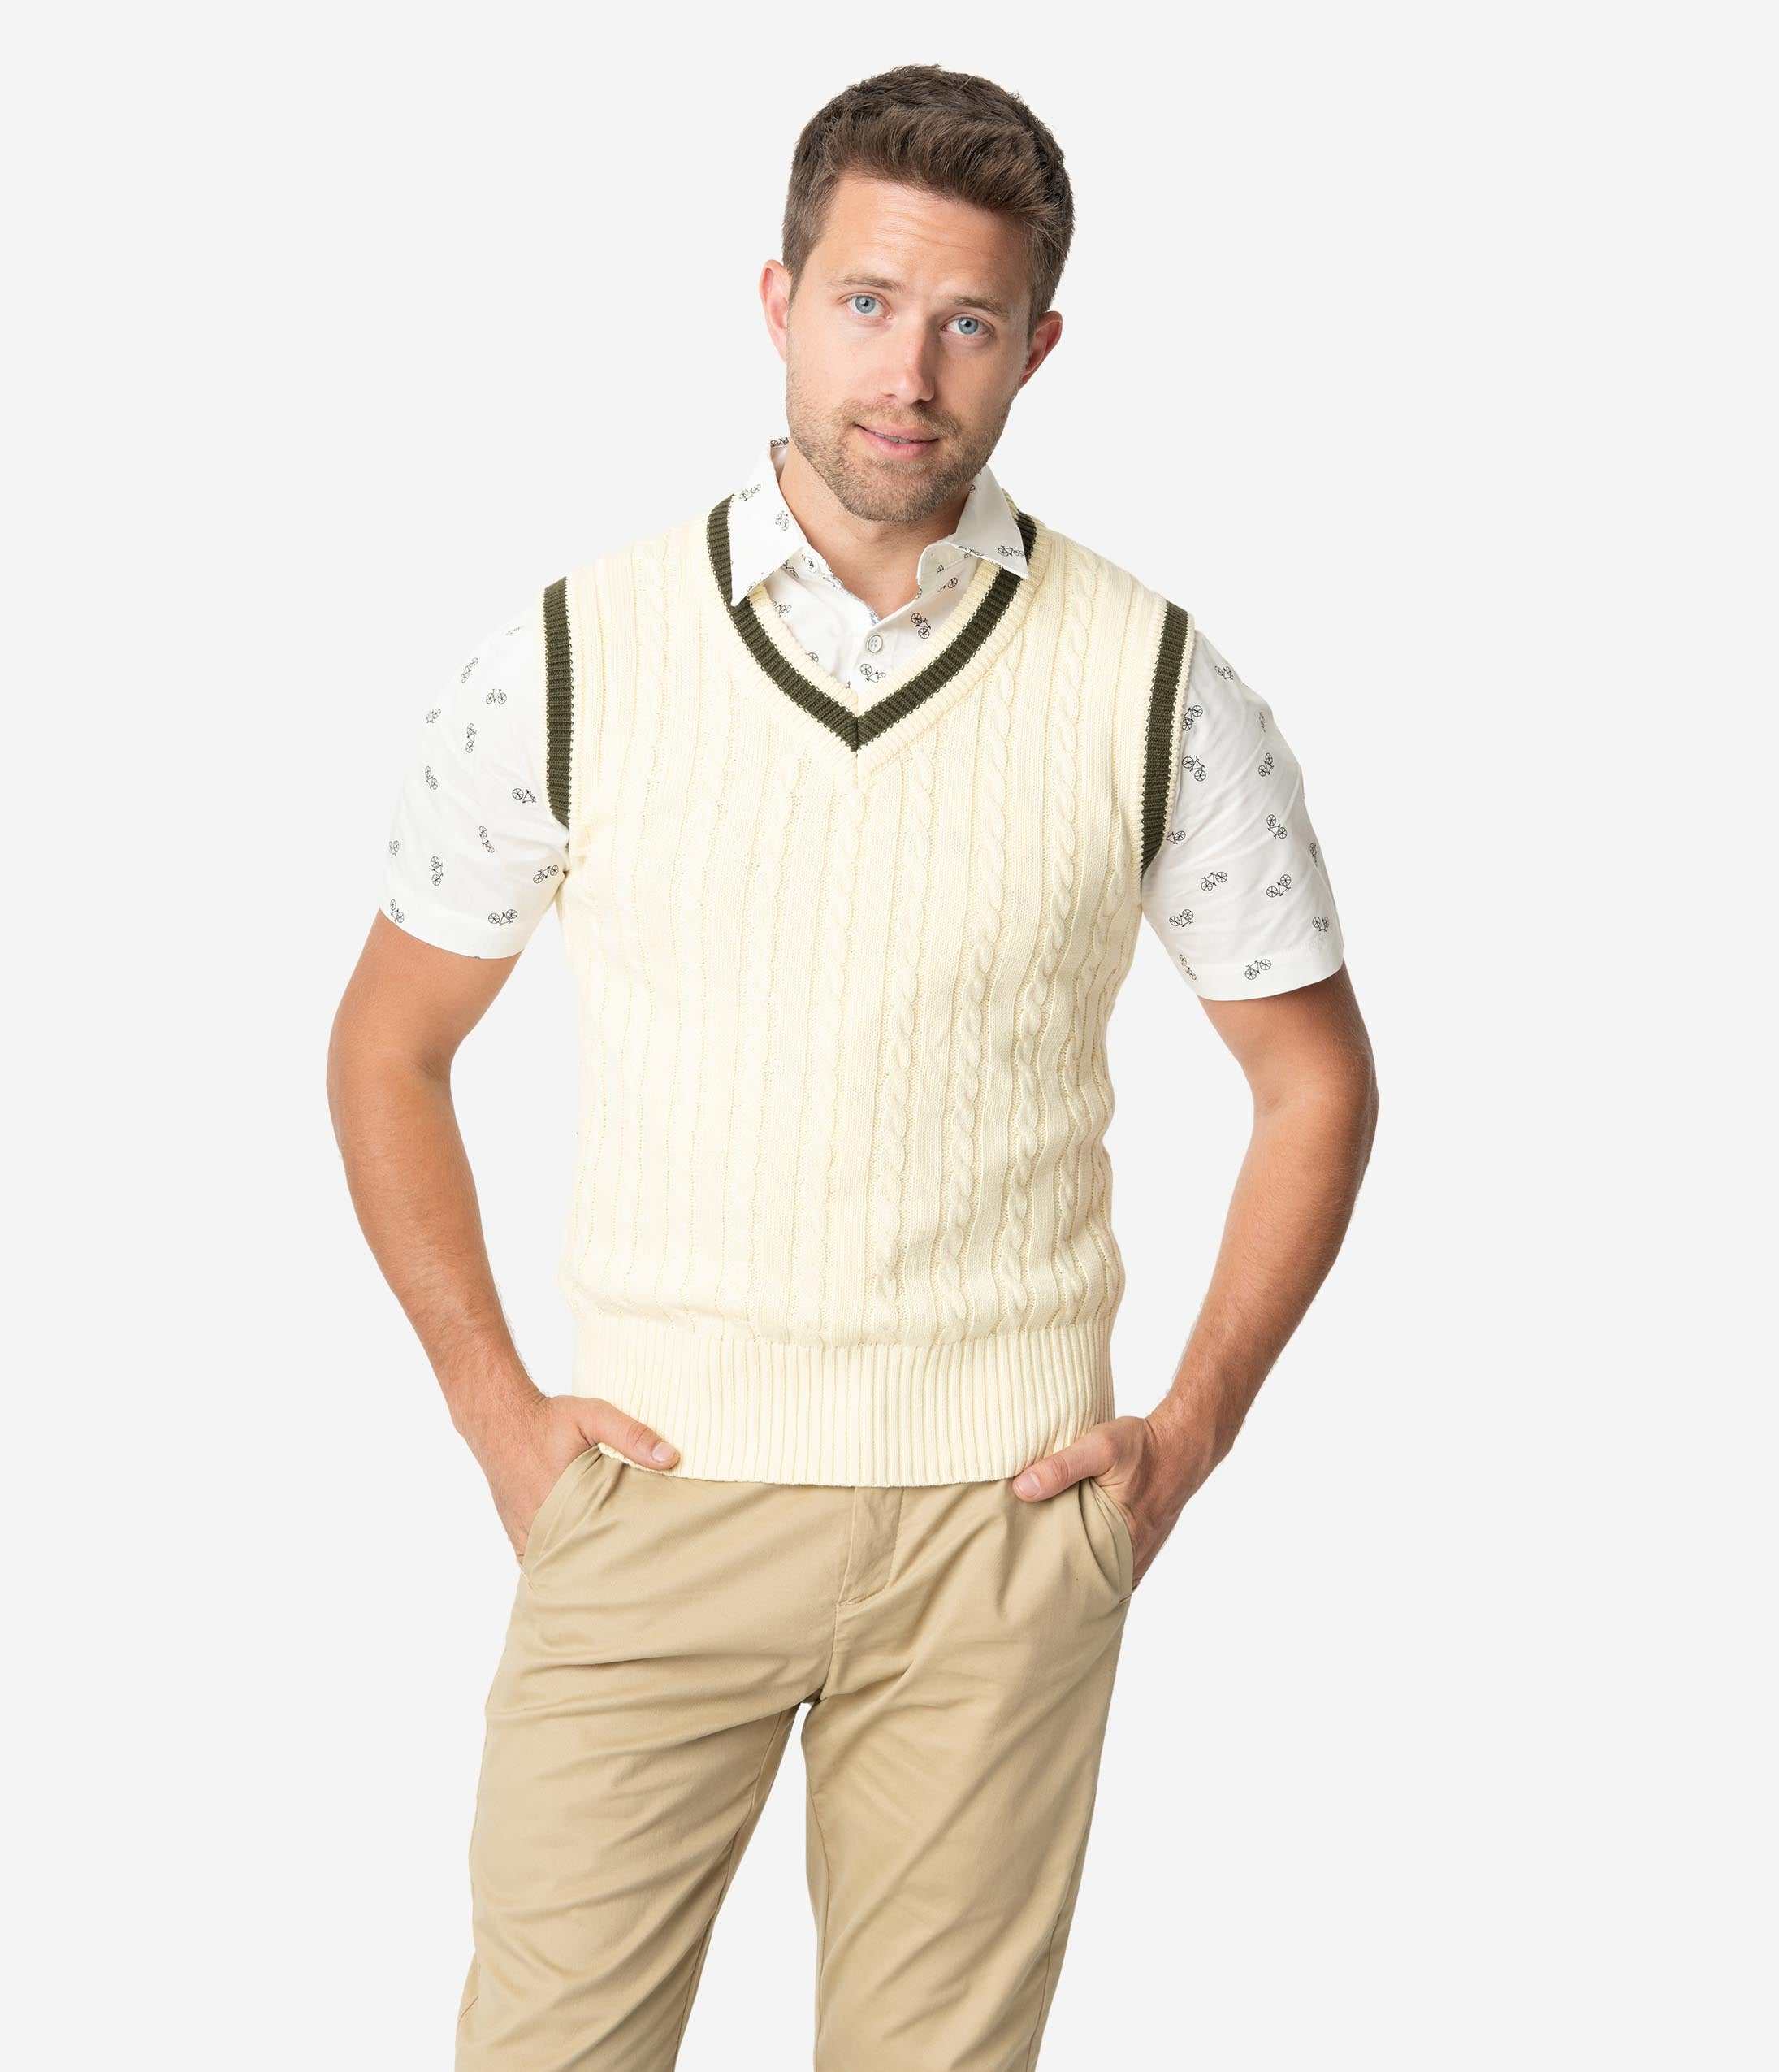 Downton Abbey Men's Fashion Guide Collectif 1950S Cream Cable Knit Alex Mens Sweater Vest $48.00 AT vintagedancer.com